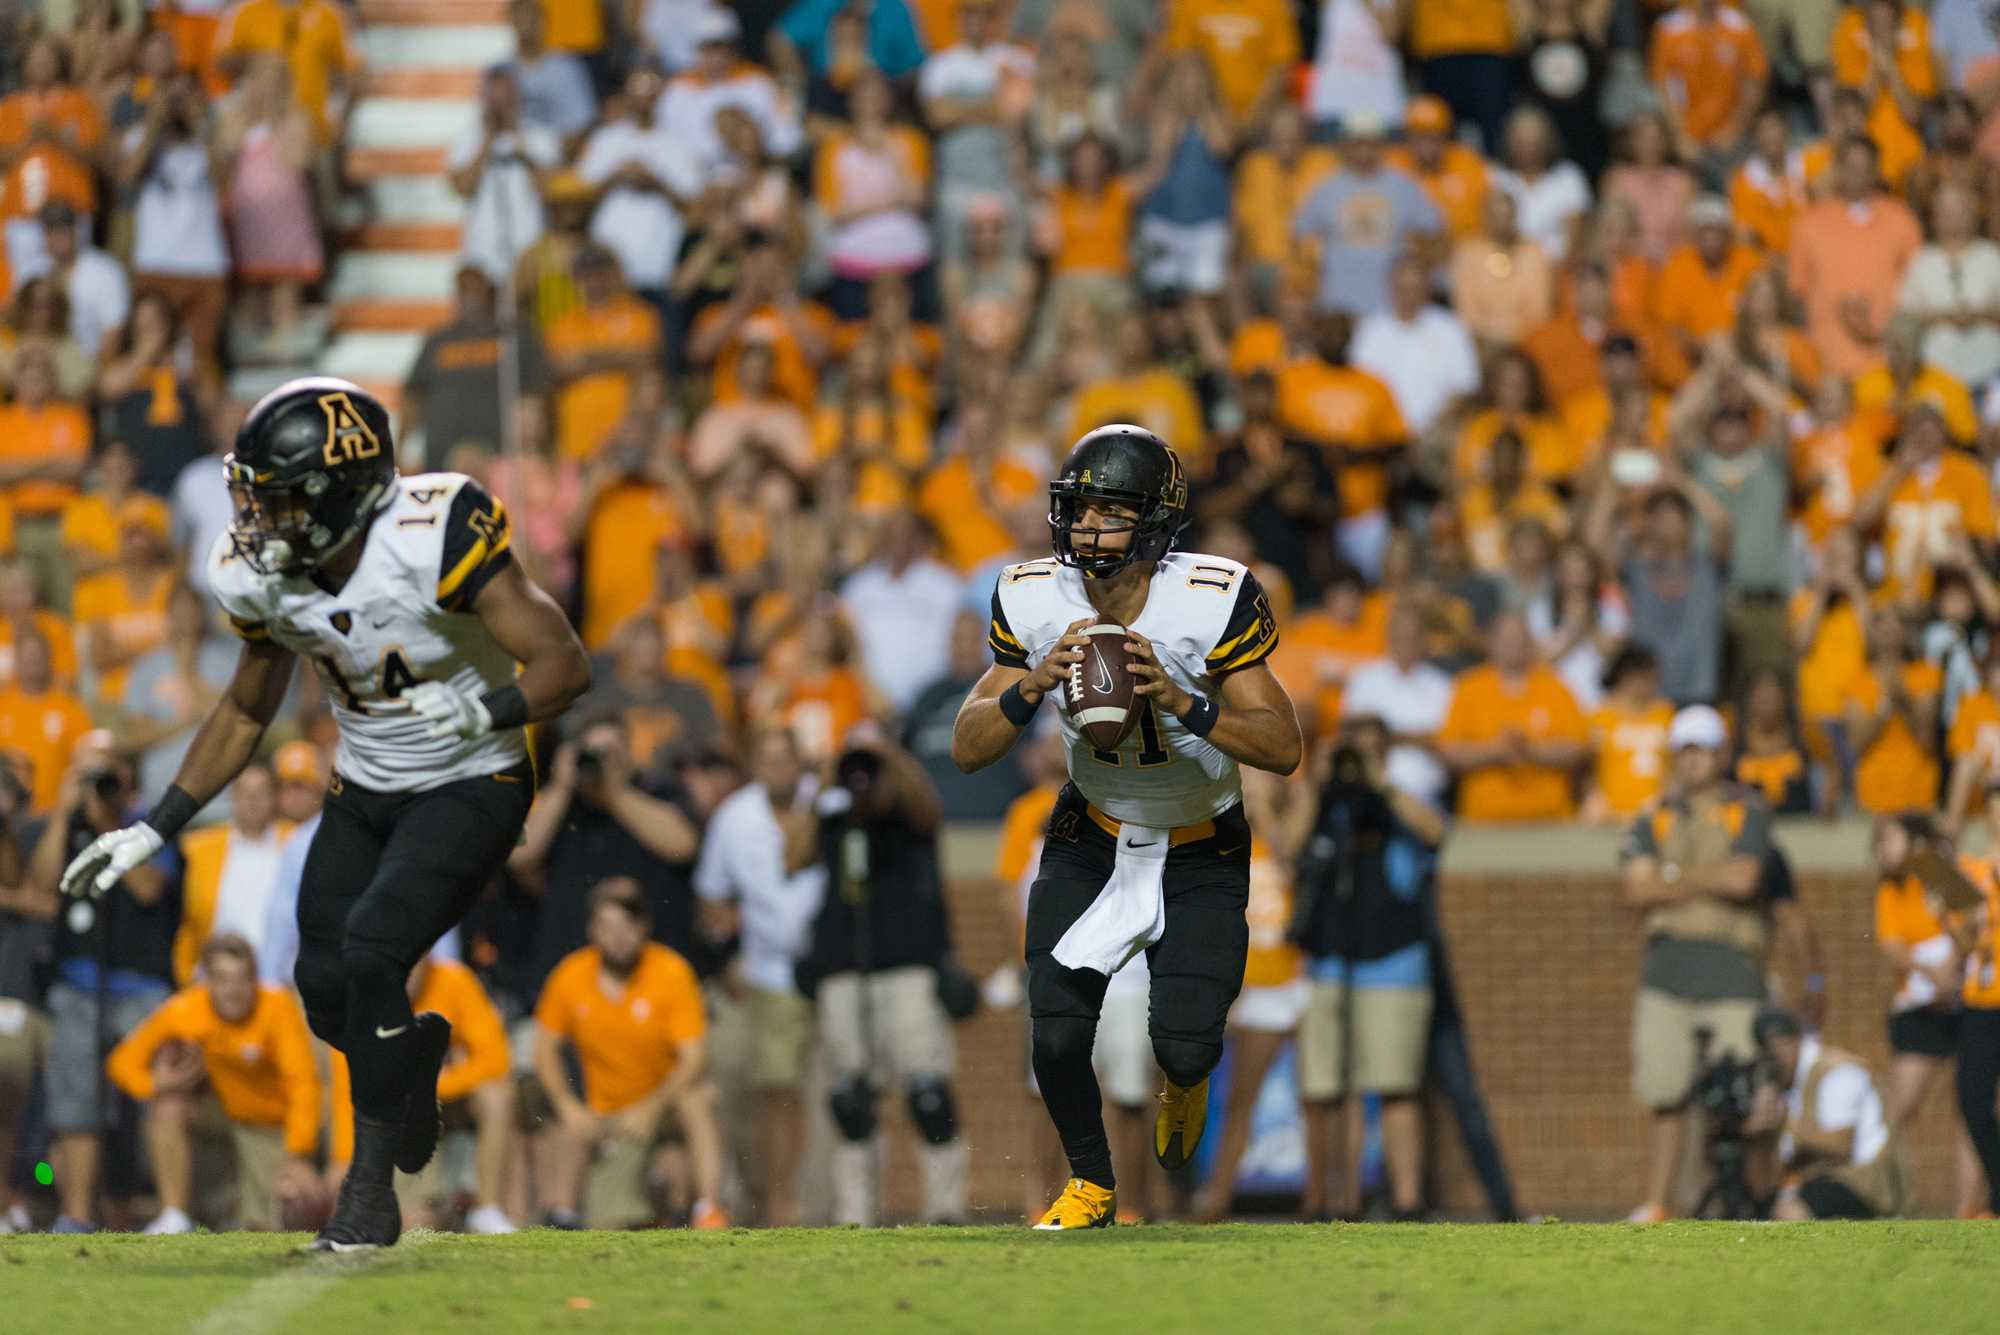 Quarterback+Taylor+Lamb+looks+to+pass+the+ball+in+their+game+at+Tennessee.%0APhoto+By%3A+Dallas+Linger%2C+Photo+Editor+